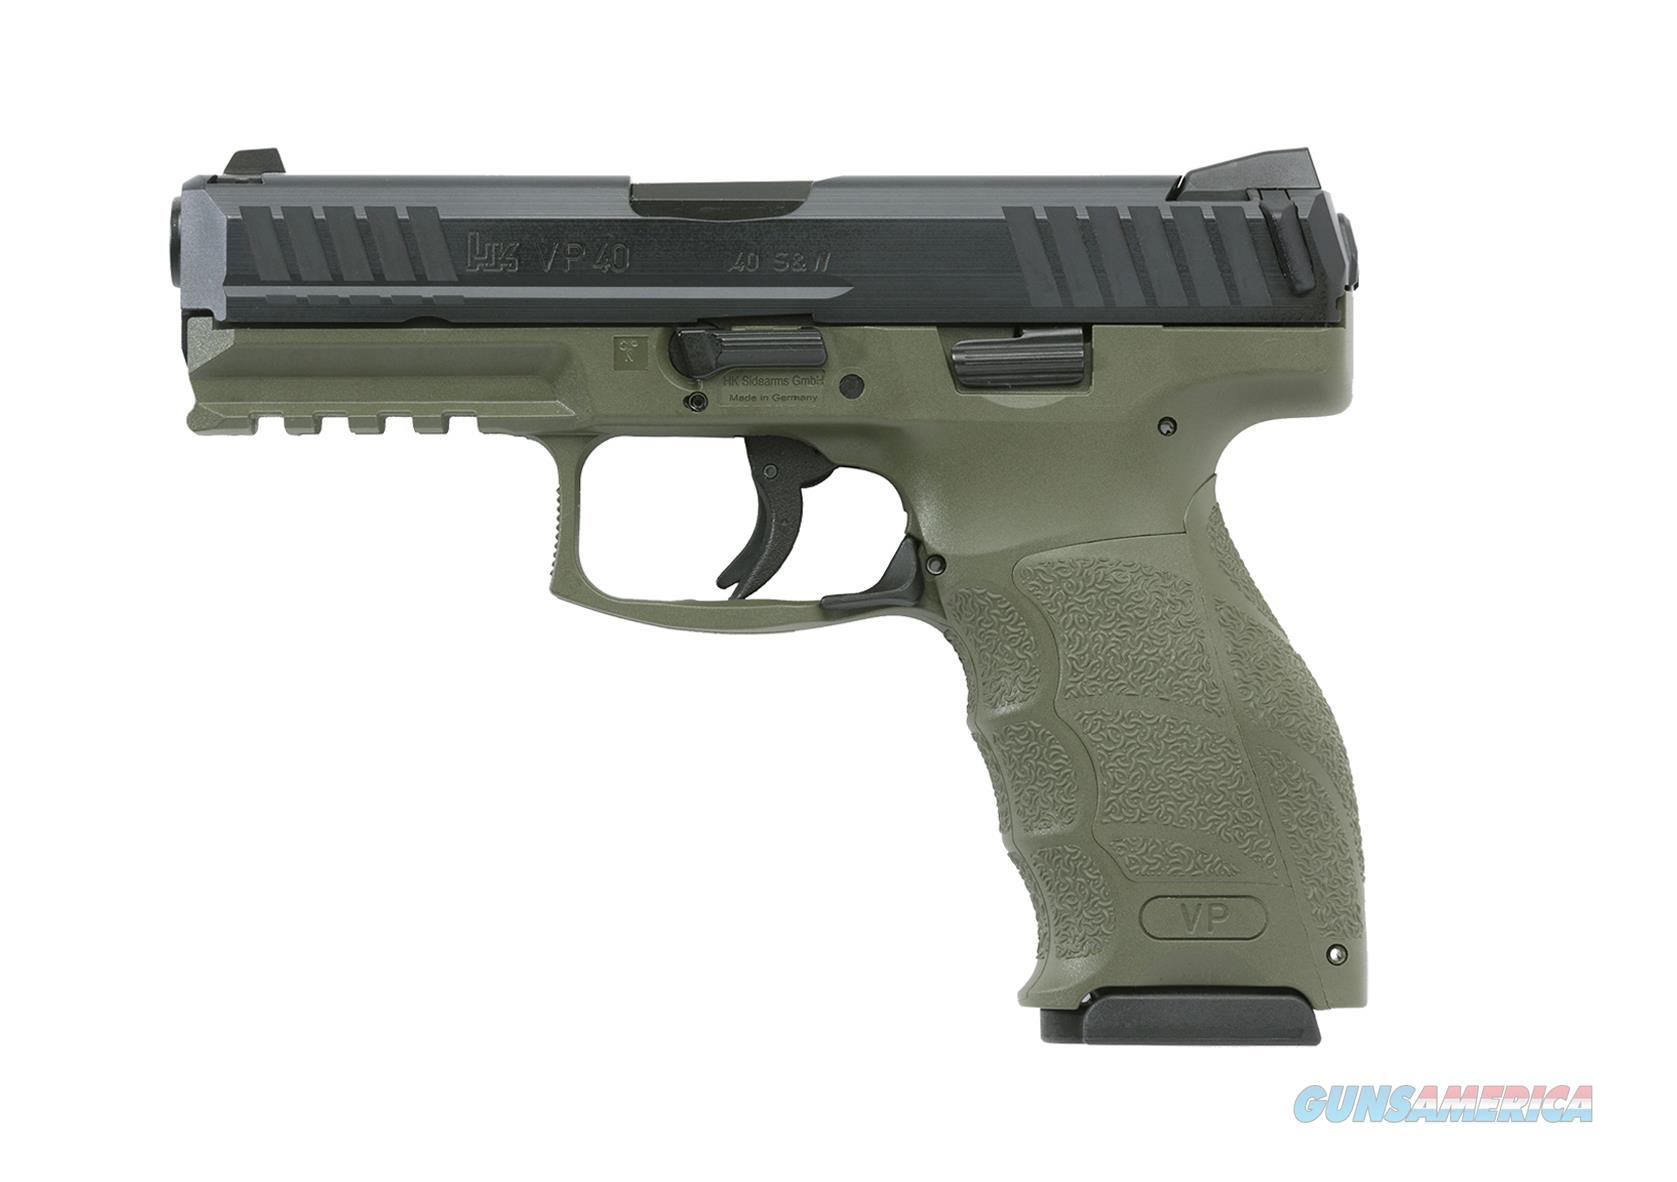 "HK VP9 9mm 4.09"" 15+1 OD Green - New in Case  Guns > Pistols > Heckler & Koch Pistols > Polymer Frame"